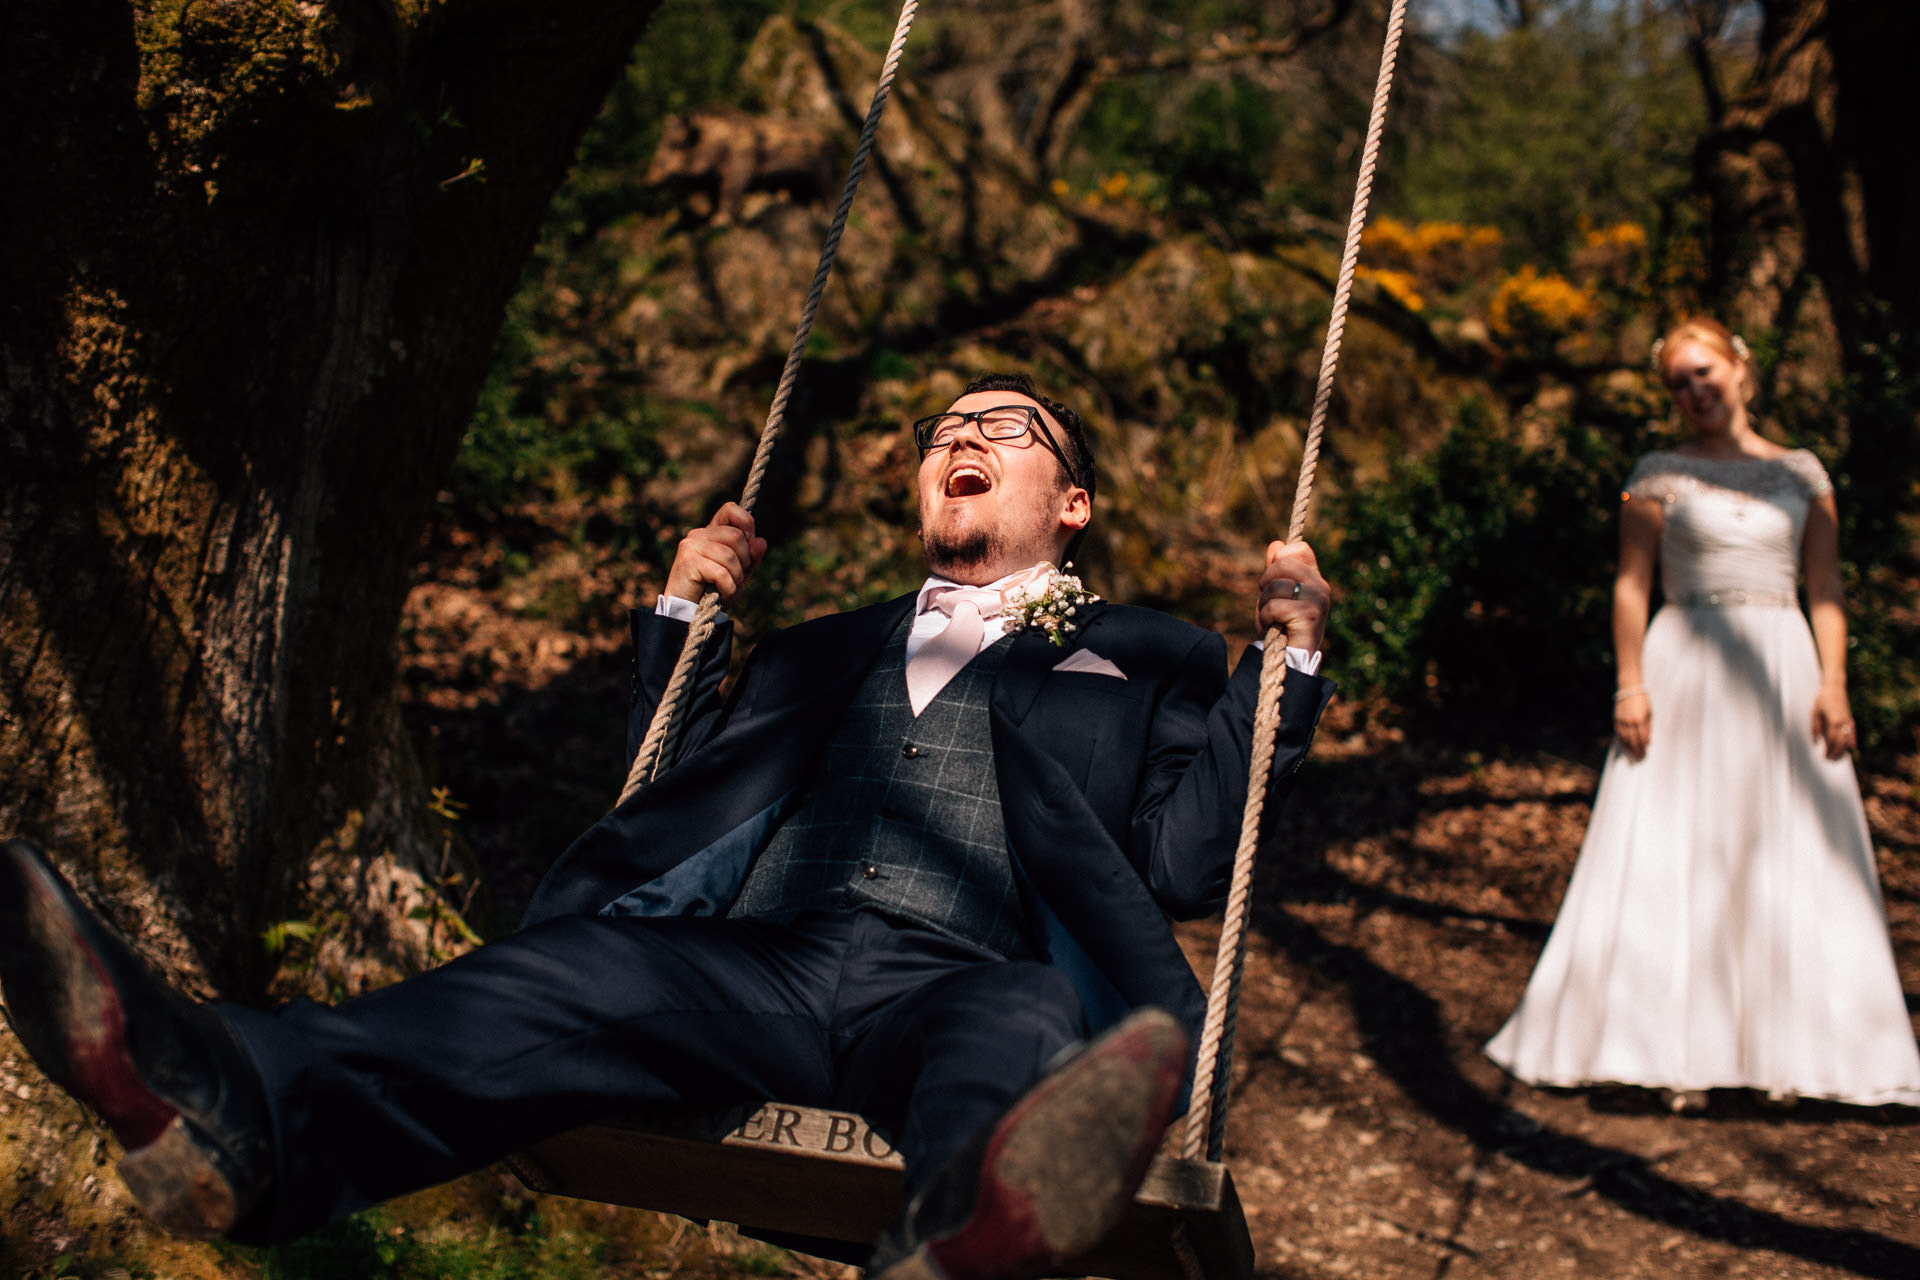 The Wild Boar Wedding Photography - EM - groom being pushed on swing